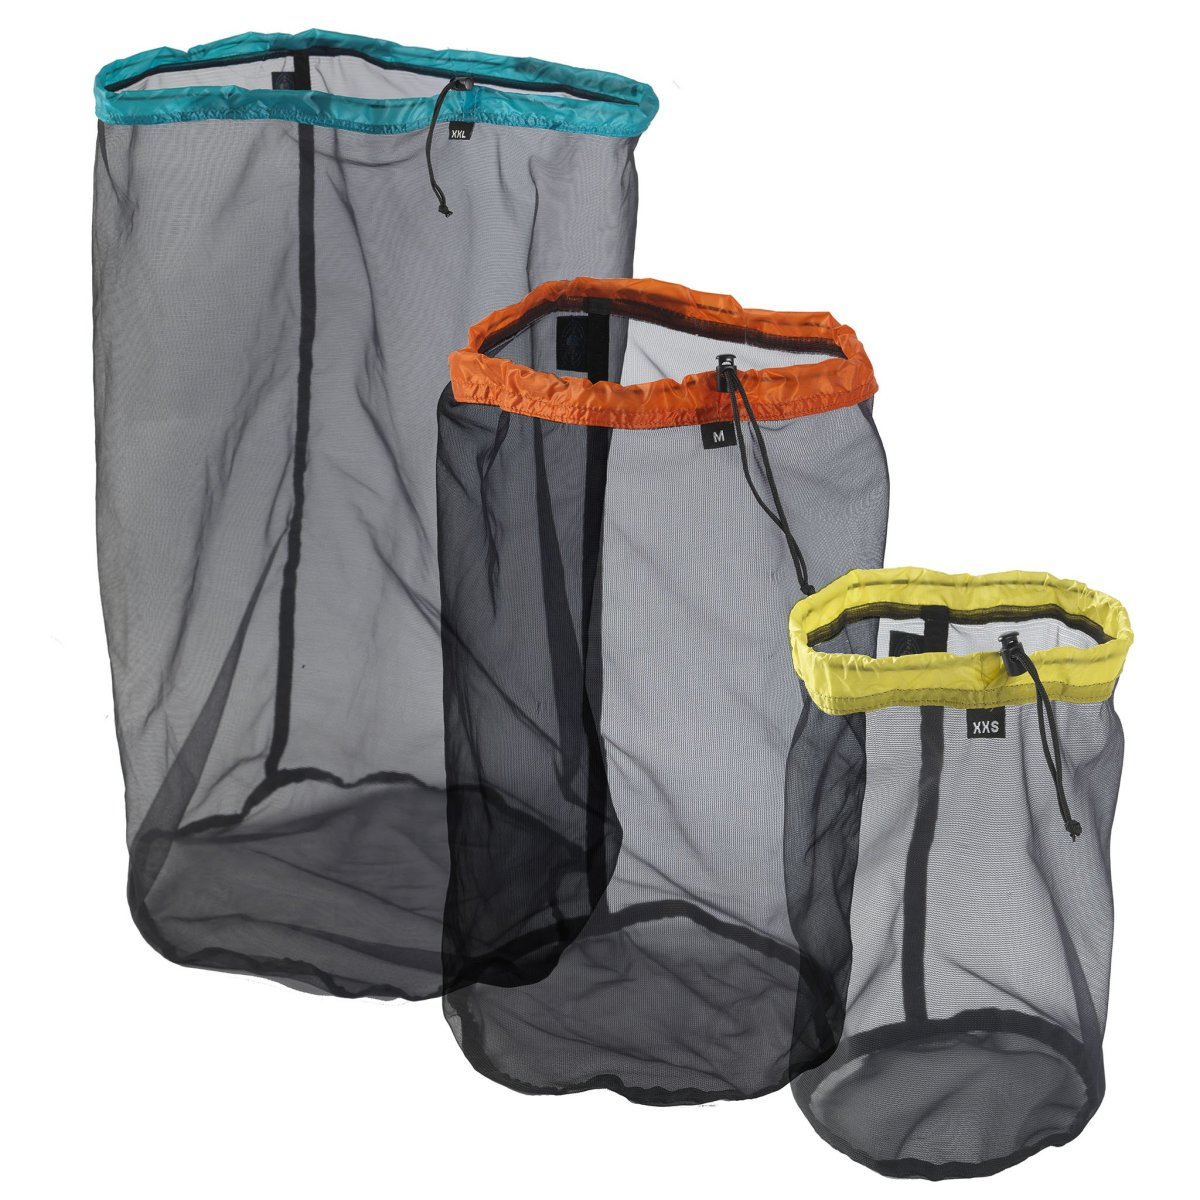 Чехол Sea to summit Ultra-Mesh Stuff Sack Orange, S Чехол1 Sea to summit Ultra-Mesh Stuff Sack Midnight, XS 1 STS AUMSSXLOR